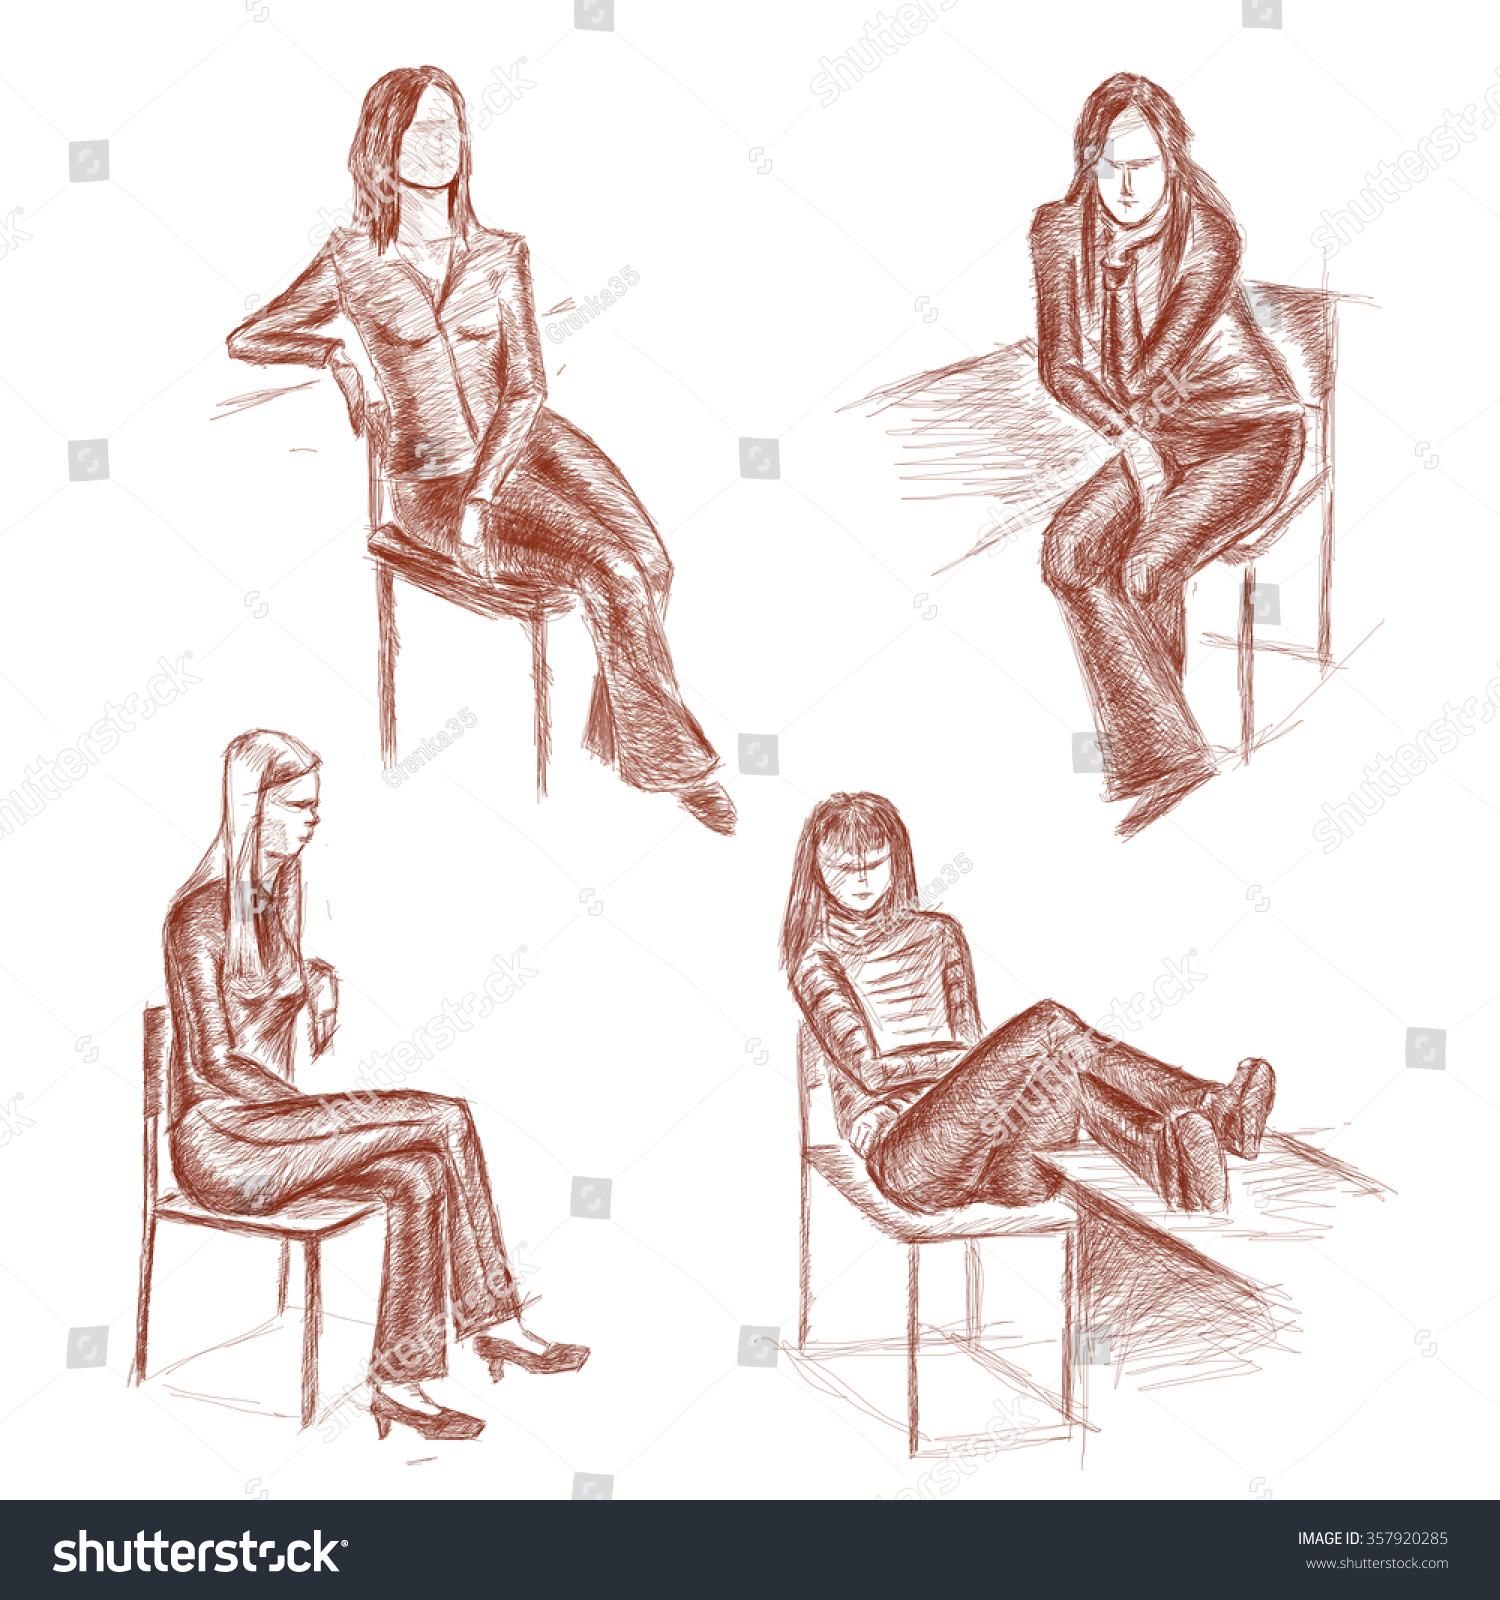 Pencil drawing of four girls sitting on chairs